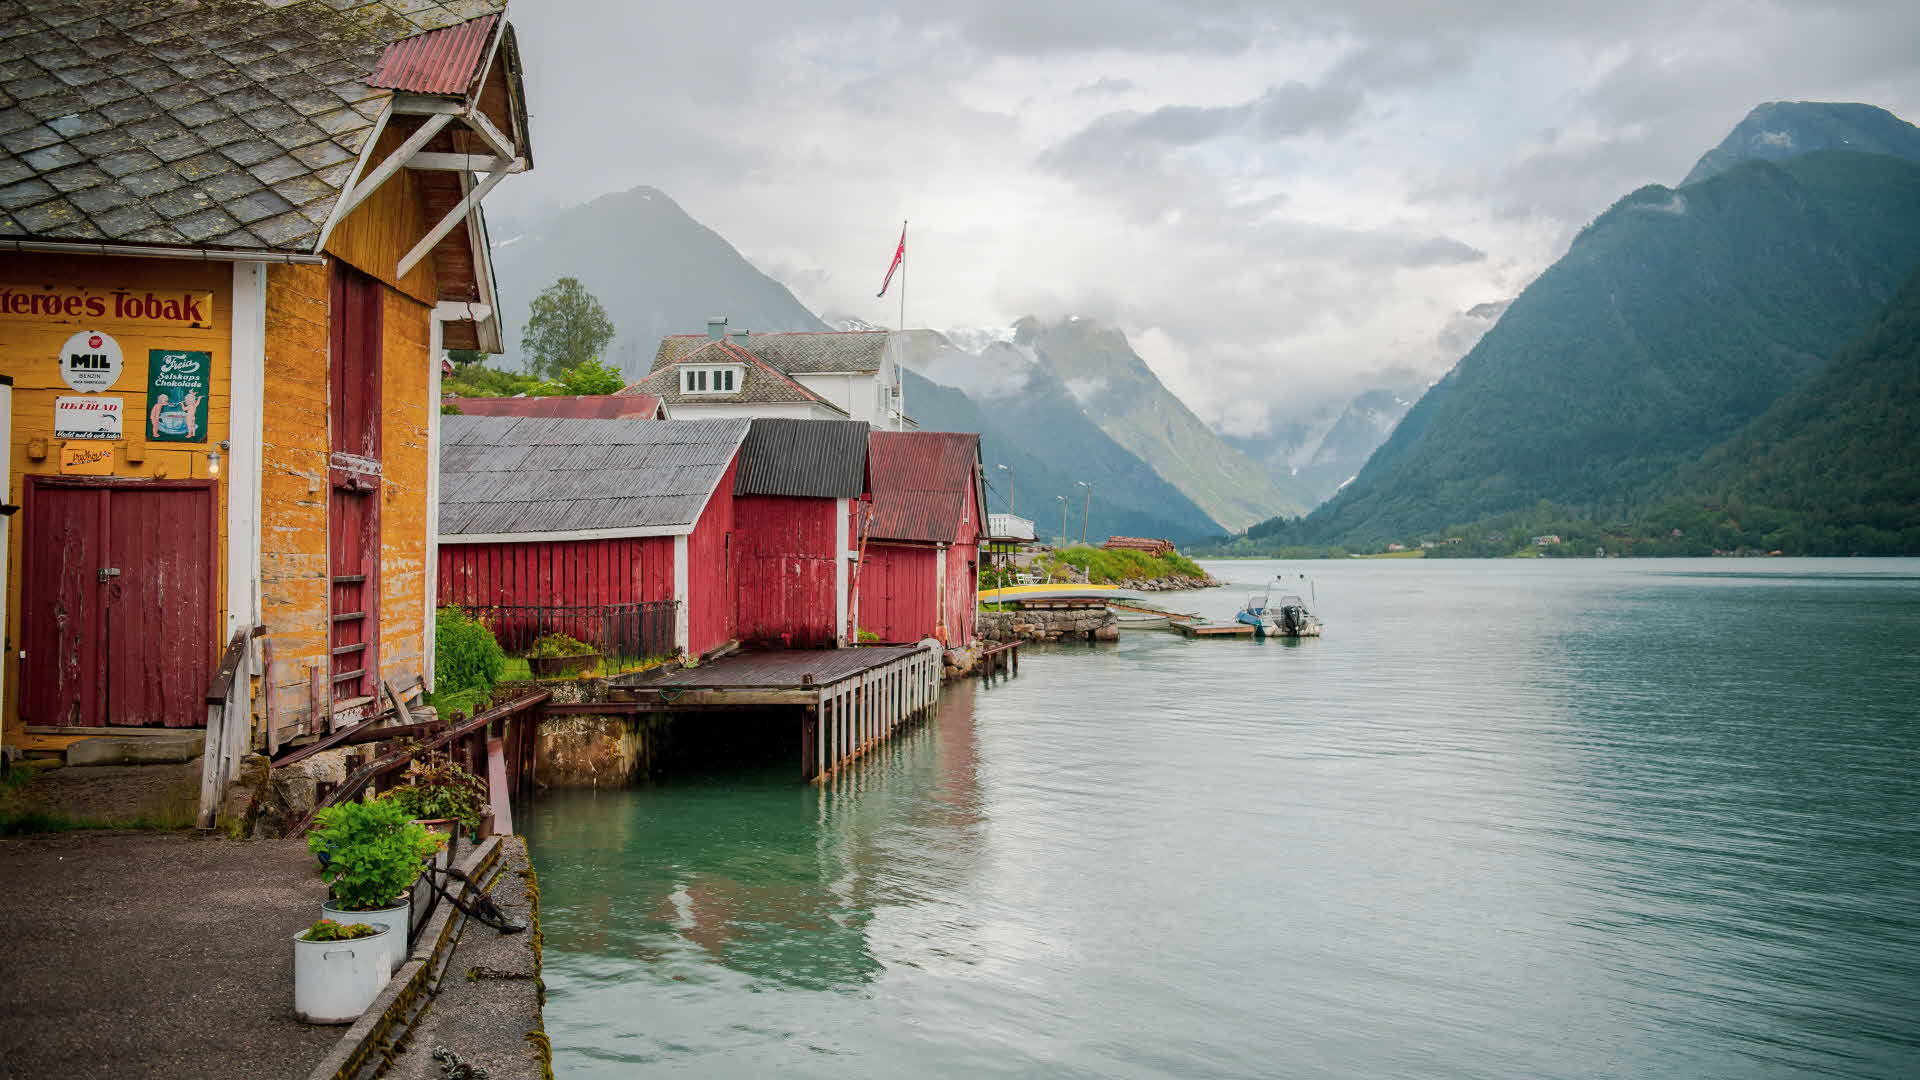 One yellow and two red boathouses along the Fjærlandsfjord, with grey clouds over the mountains